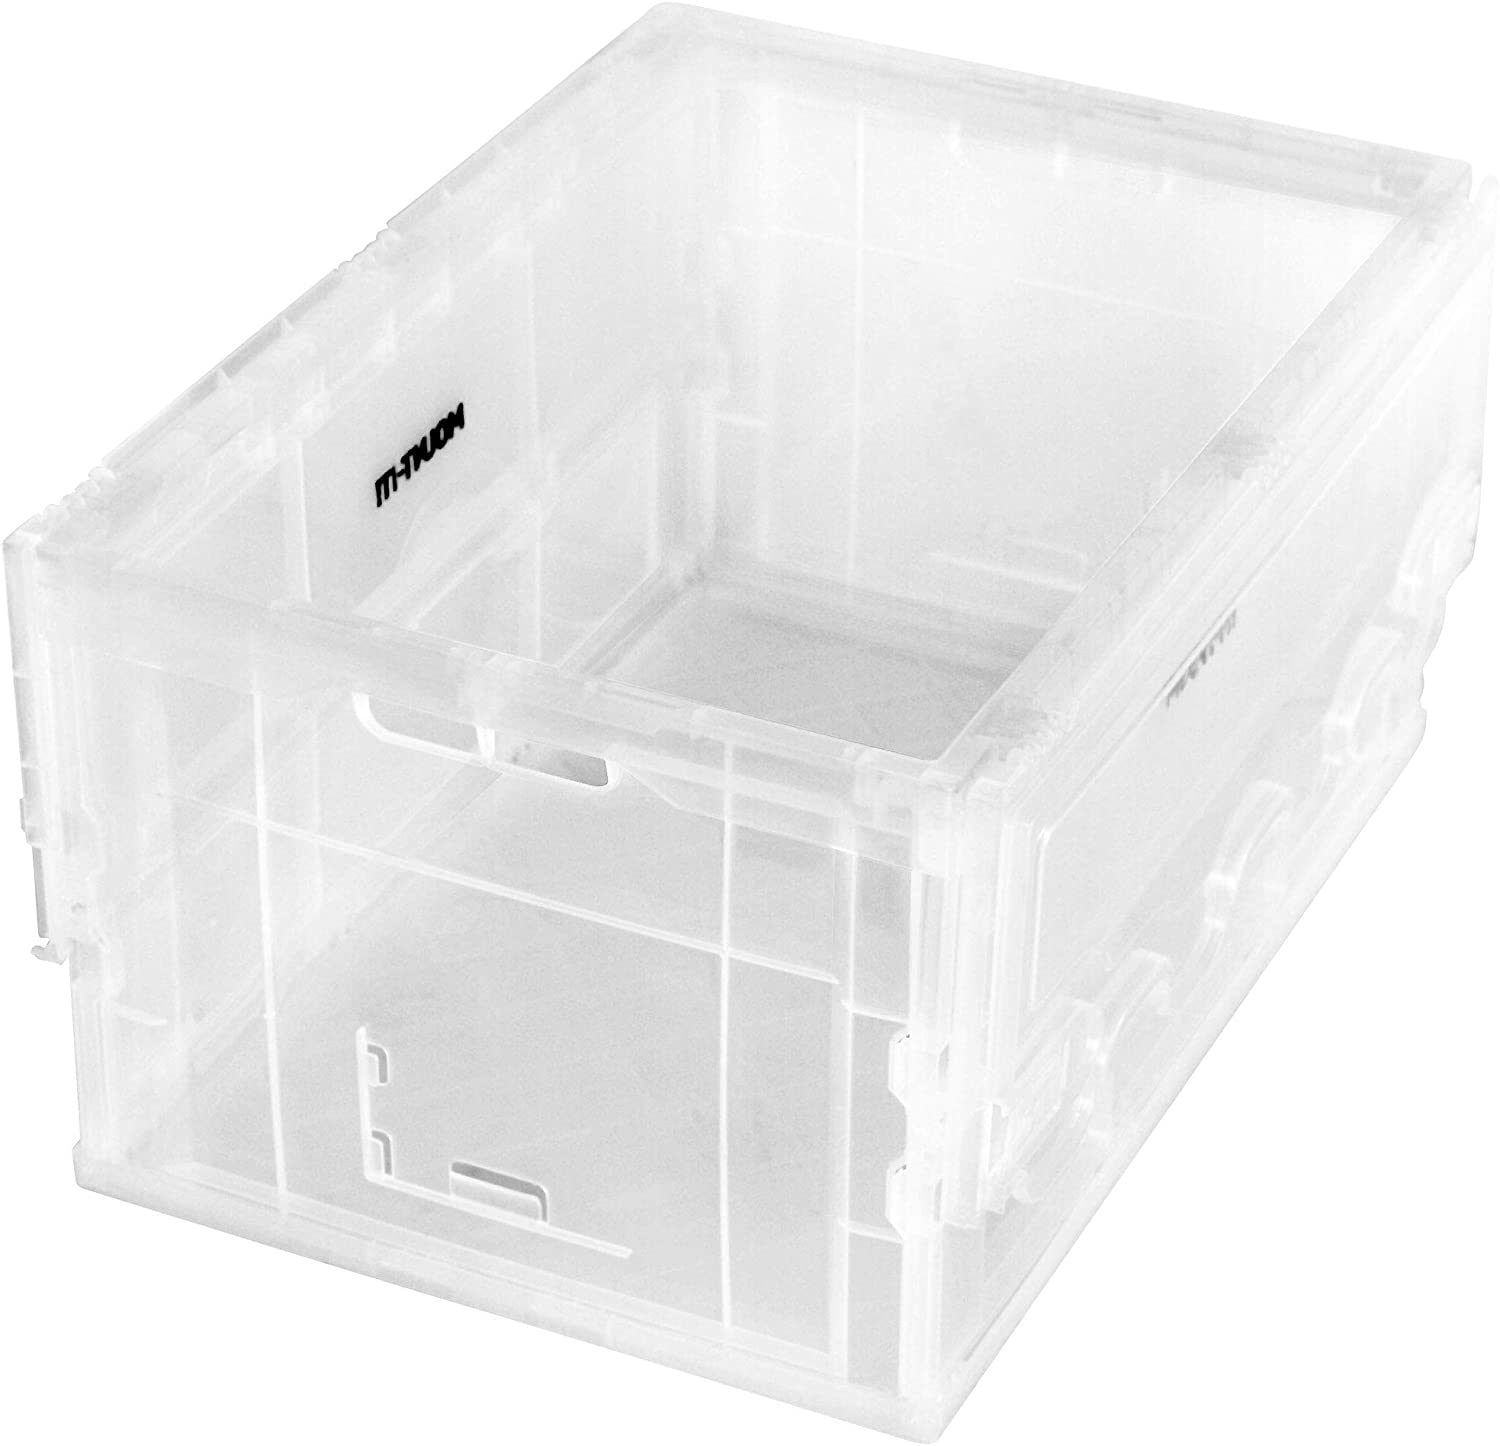 MOUNT-IT! Collapsible Storage Bin with Lid [65 Liter] Folding Crate, Plastic Container, Trunk Storage, Box (23x15x13 Inches)